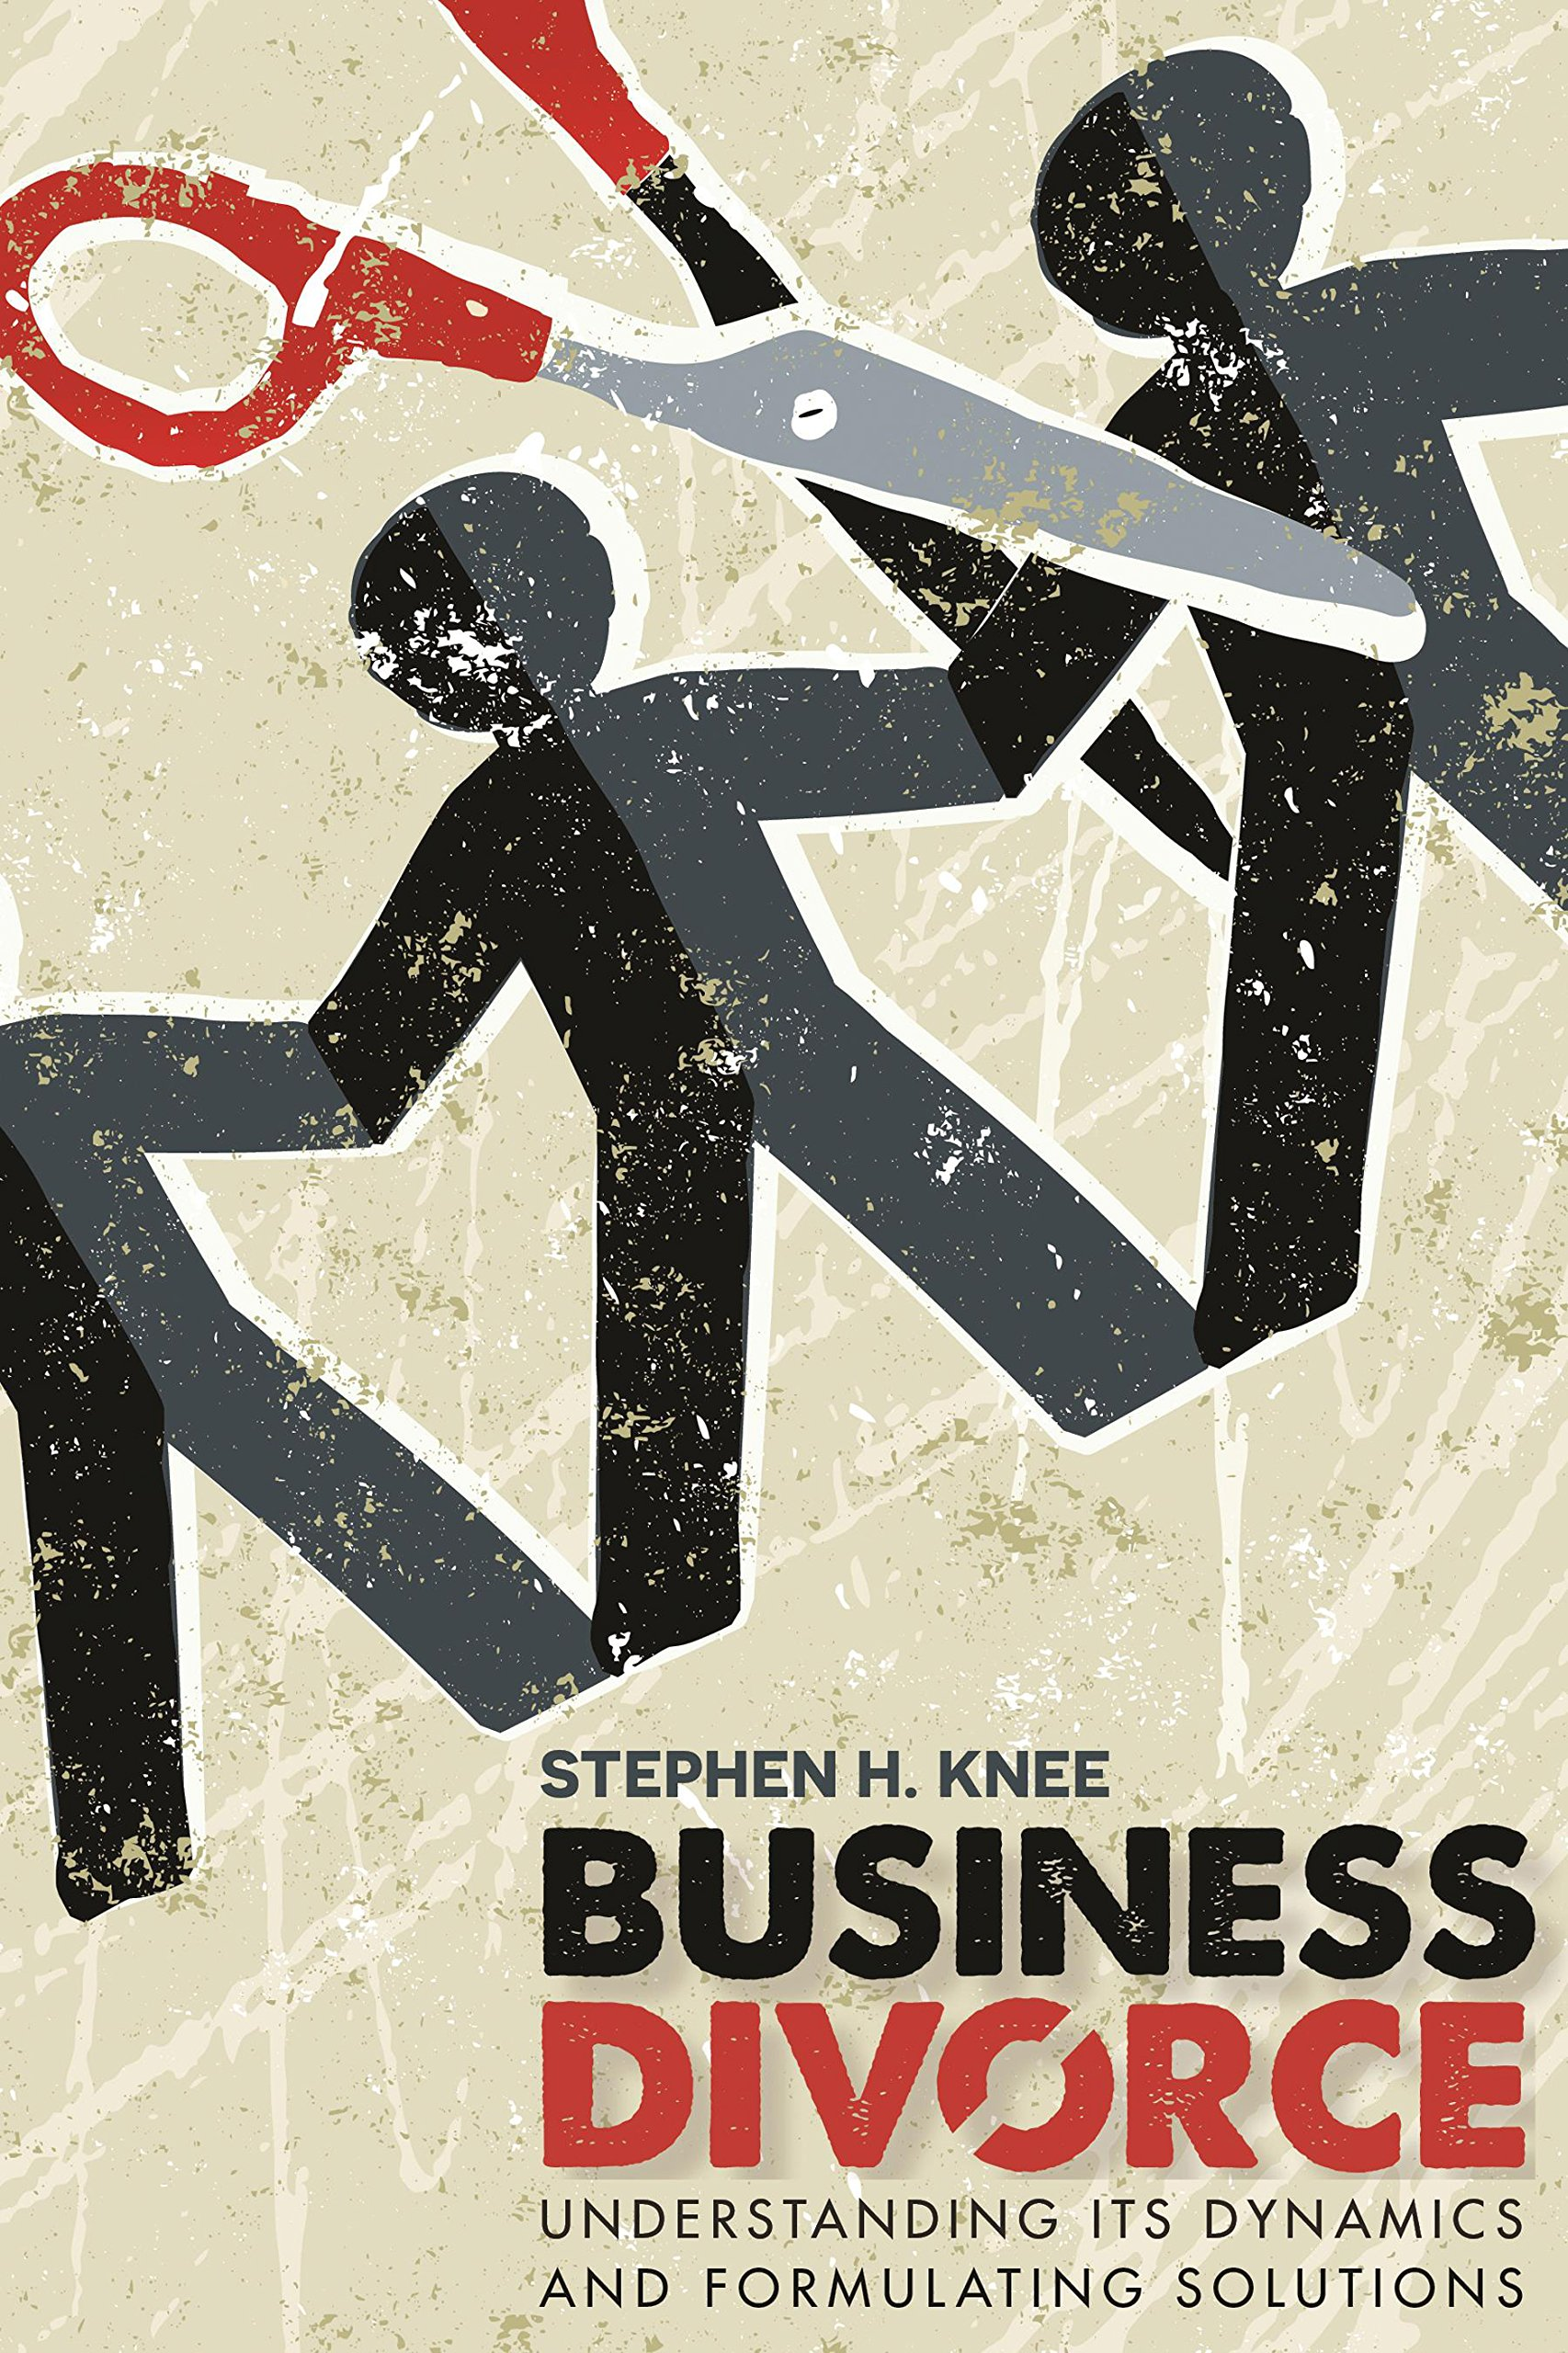 business-divorce-understanding-its-dynamics-and-formulating-solutions